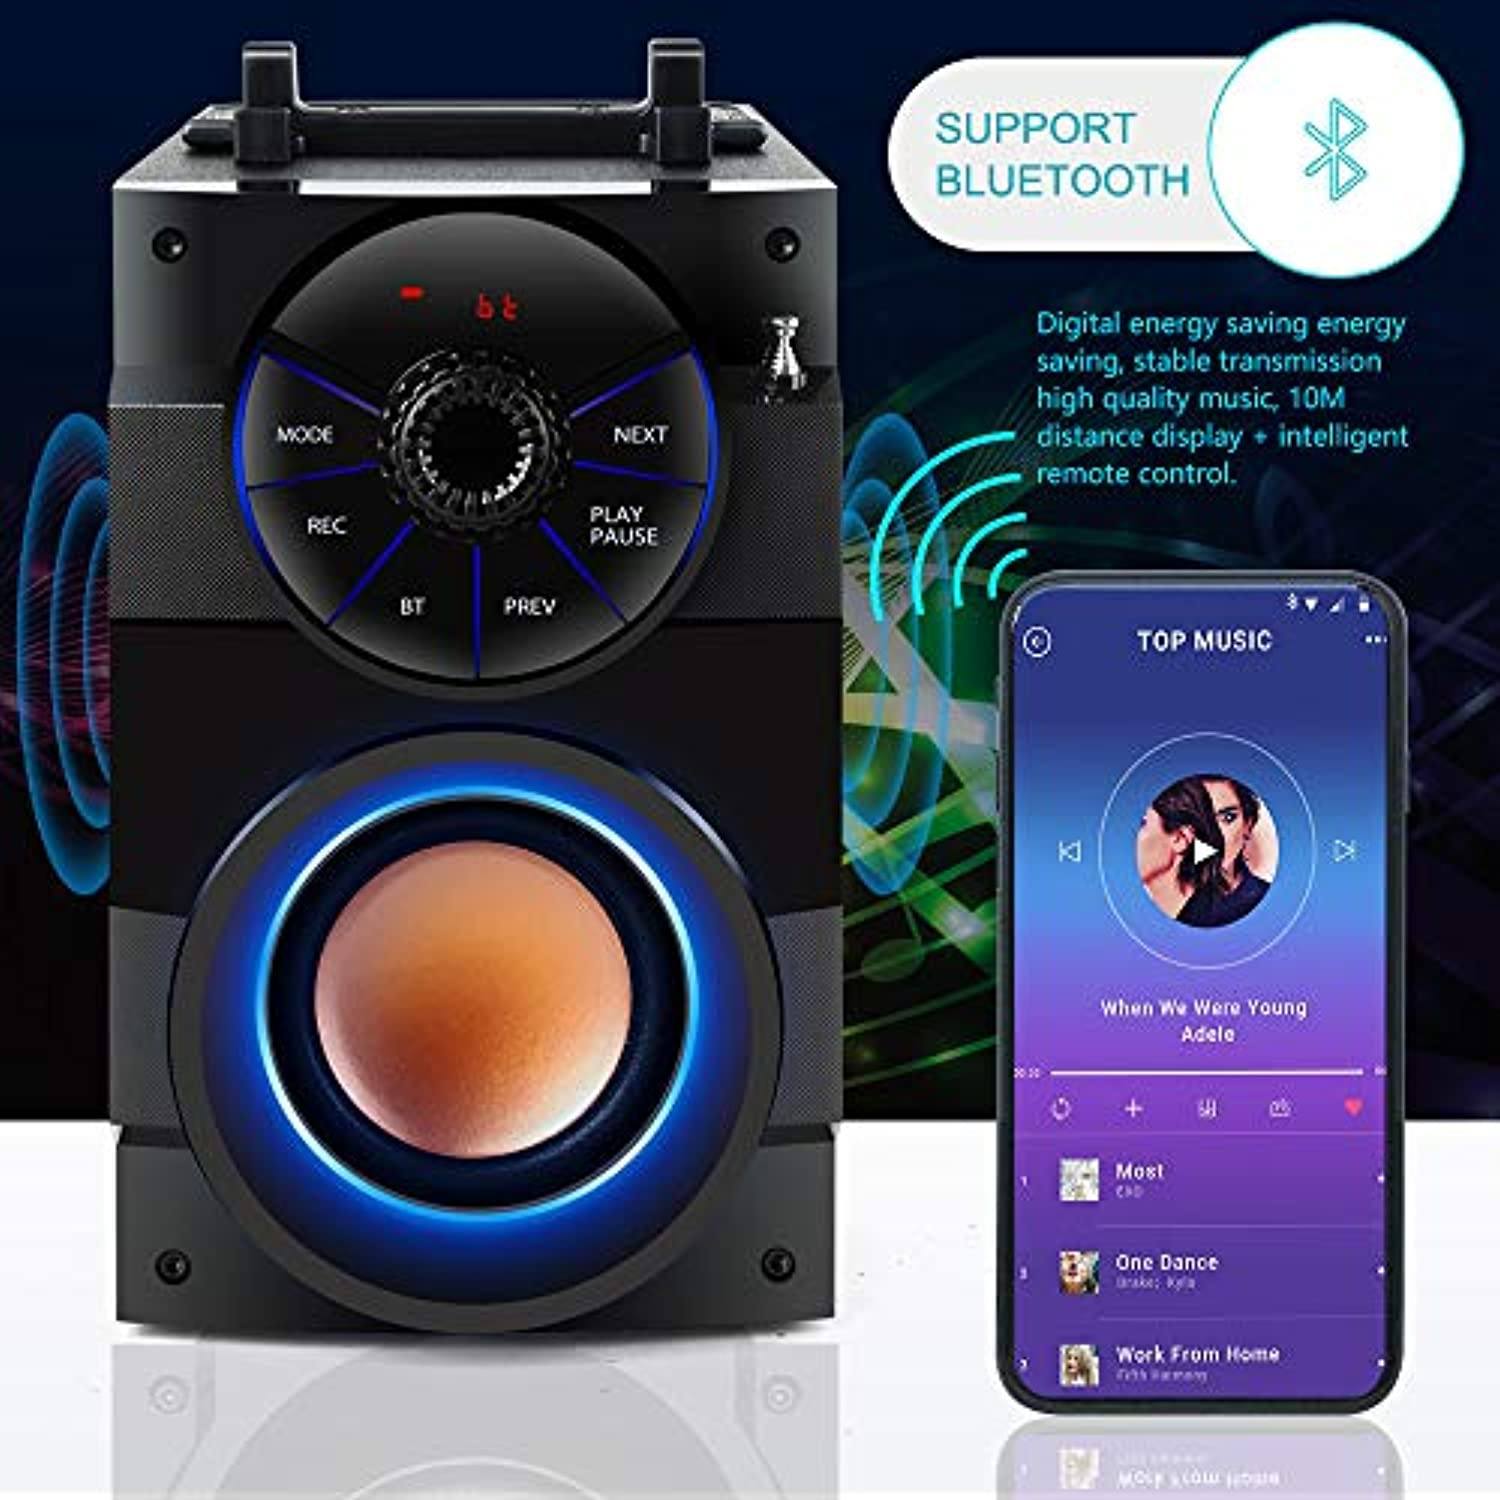 Classier: Buy TAMPROAD TAMPROAD Portable Bluetooth Speakers with Subwoofer Rich Bass Wireless Outdoor/Indoor Party Speakers MP3 Player Powerful Speaker Support Remote Control FM Radio for Phone Computer PC Home TV